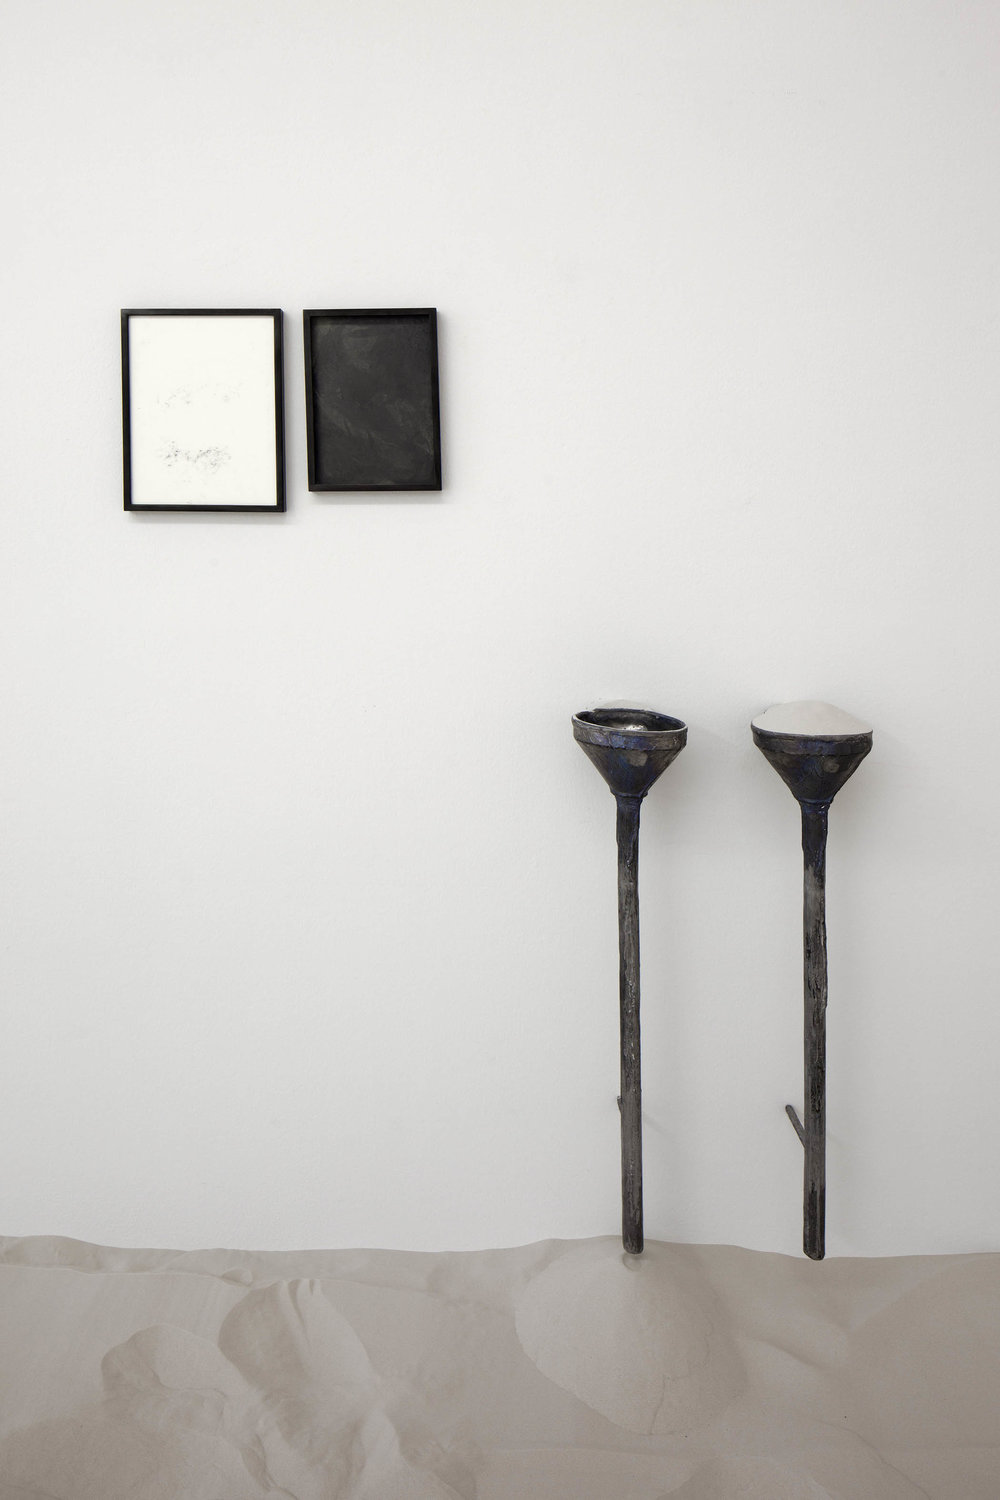 PENDING , 2015  lead, sand, graphite, spit, lacquer  Part 1:  31,5 × 23,5 cm (12 ⅜ × 9 ¼ inches)  33,5 × 25,5 × 2,5 cm (13 ¼ × 10 × 1 inches) (framed)  Part 2:  28 × 18,6 cm   30 × 20,6 × 2,5 cm (framed)  Part 3 & 4: 80 × 17 × 13,5 cm